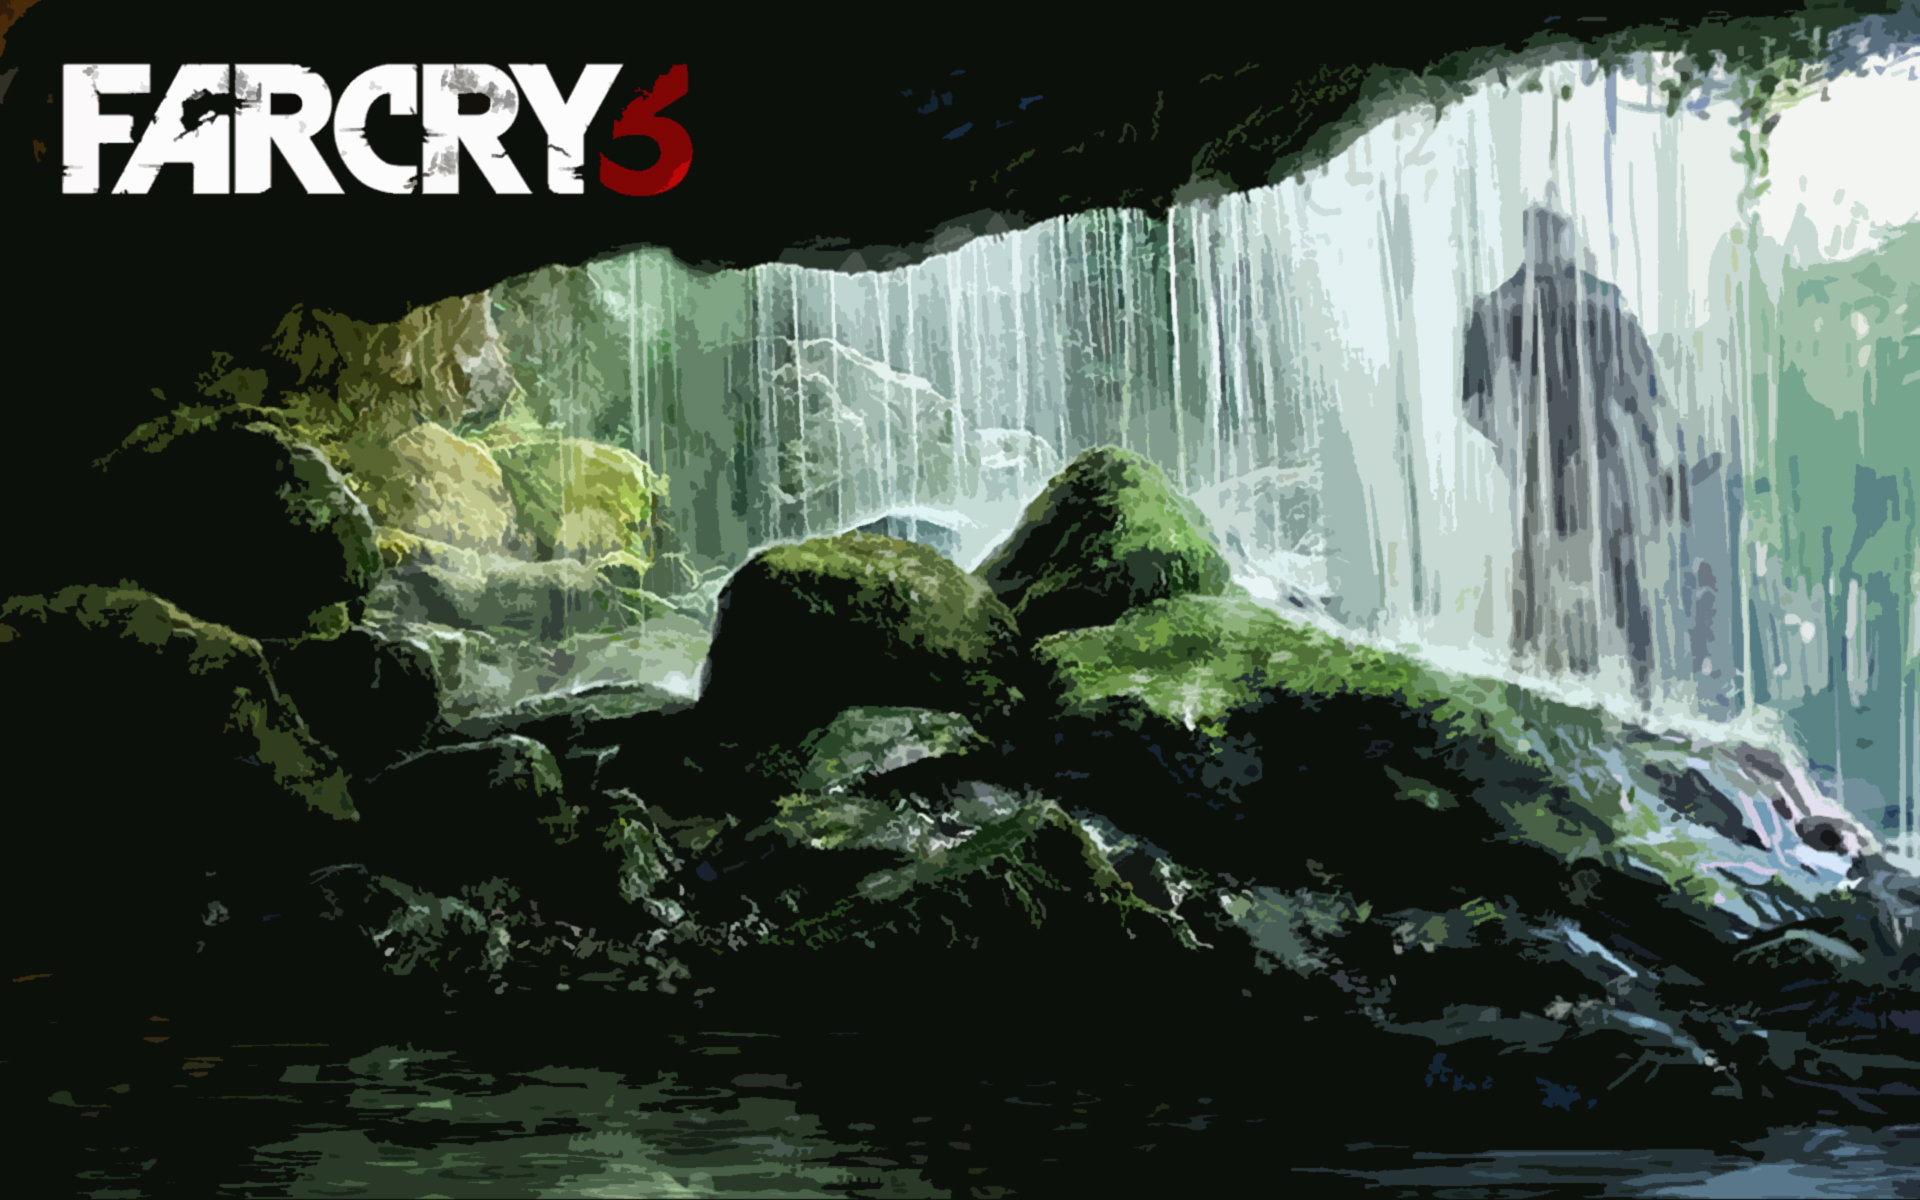 Free Download Far Cry 3 Hd Wallpaper 19201200 1920x1200 For Your